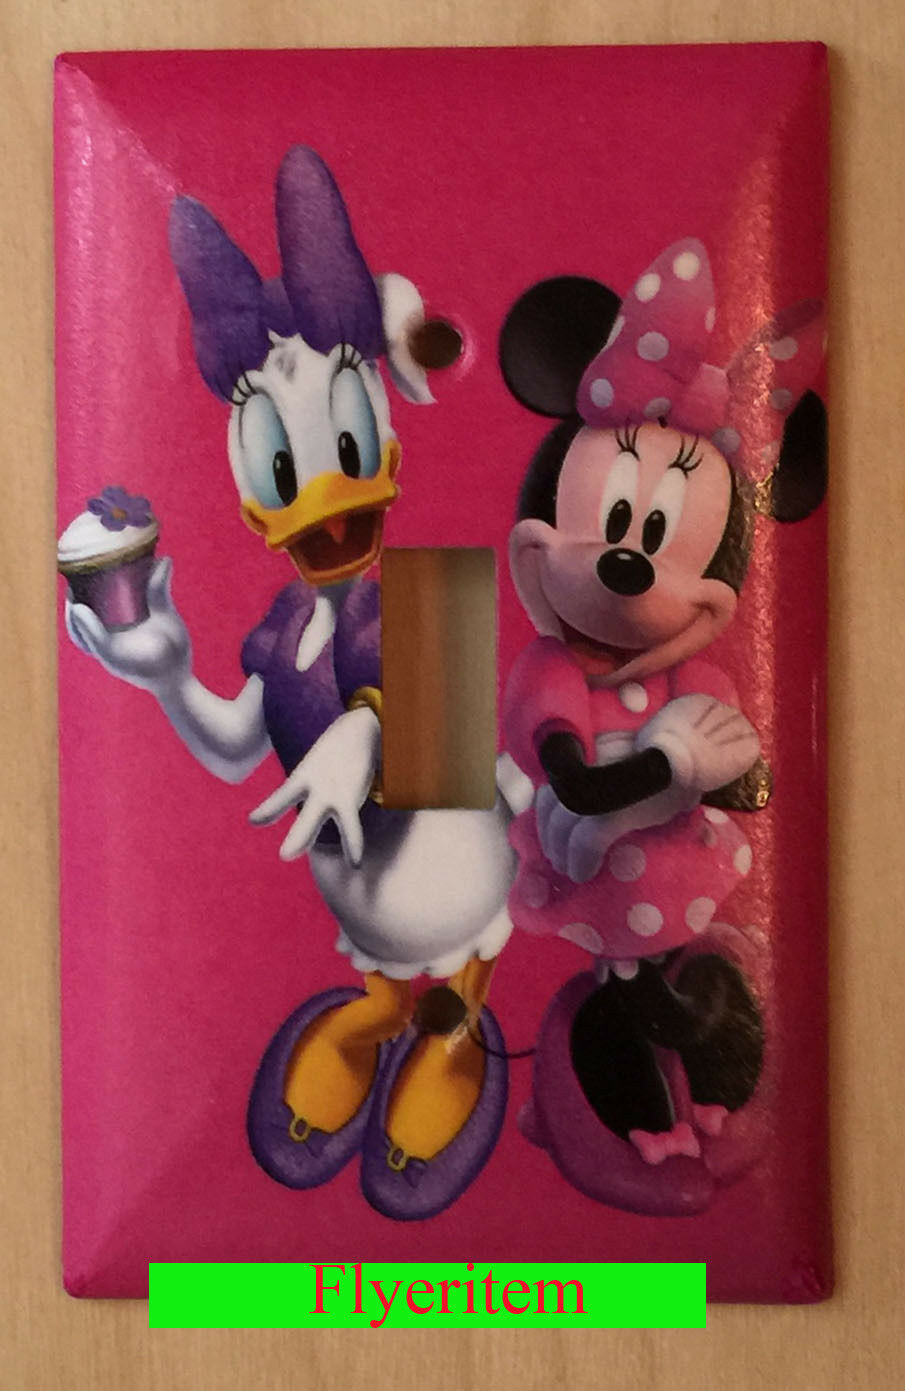 Minnie Mouse Daisy Cup Cake Light Switch Power Outlet Wall Cover Plate decor